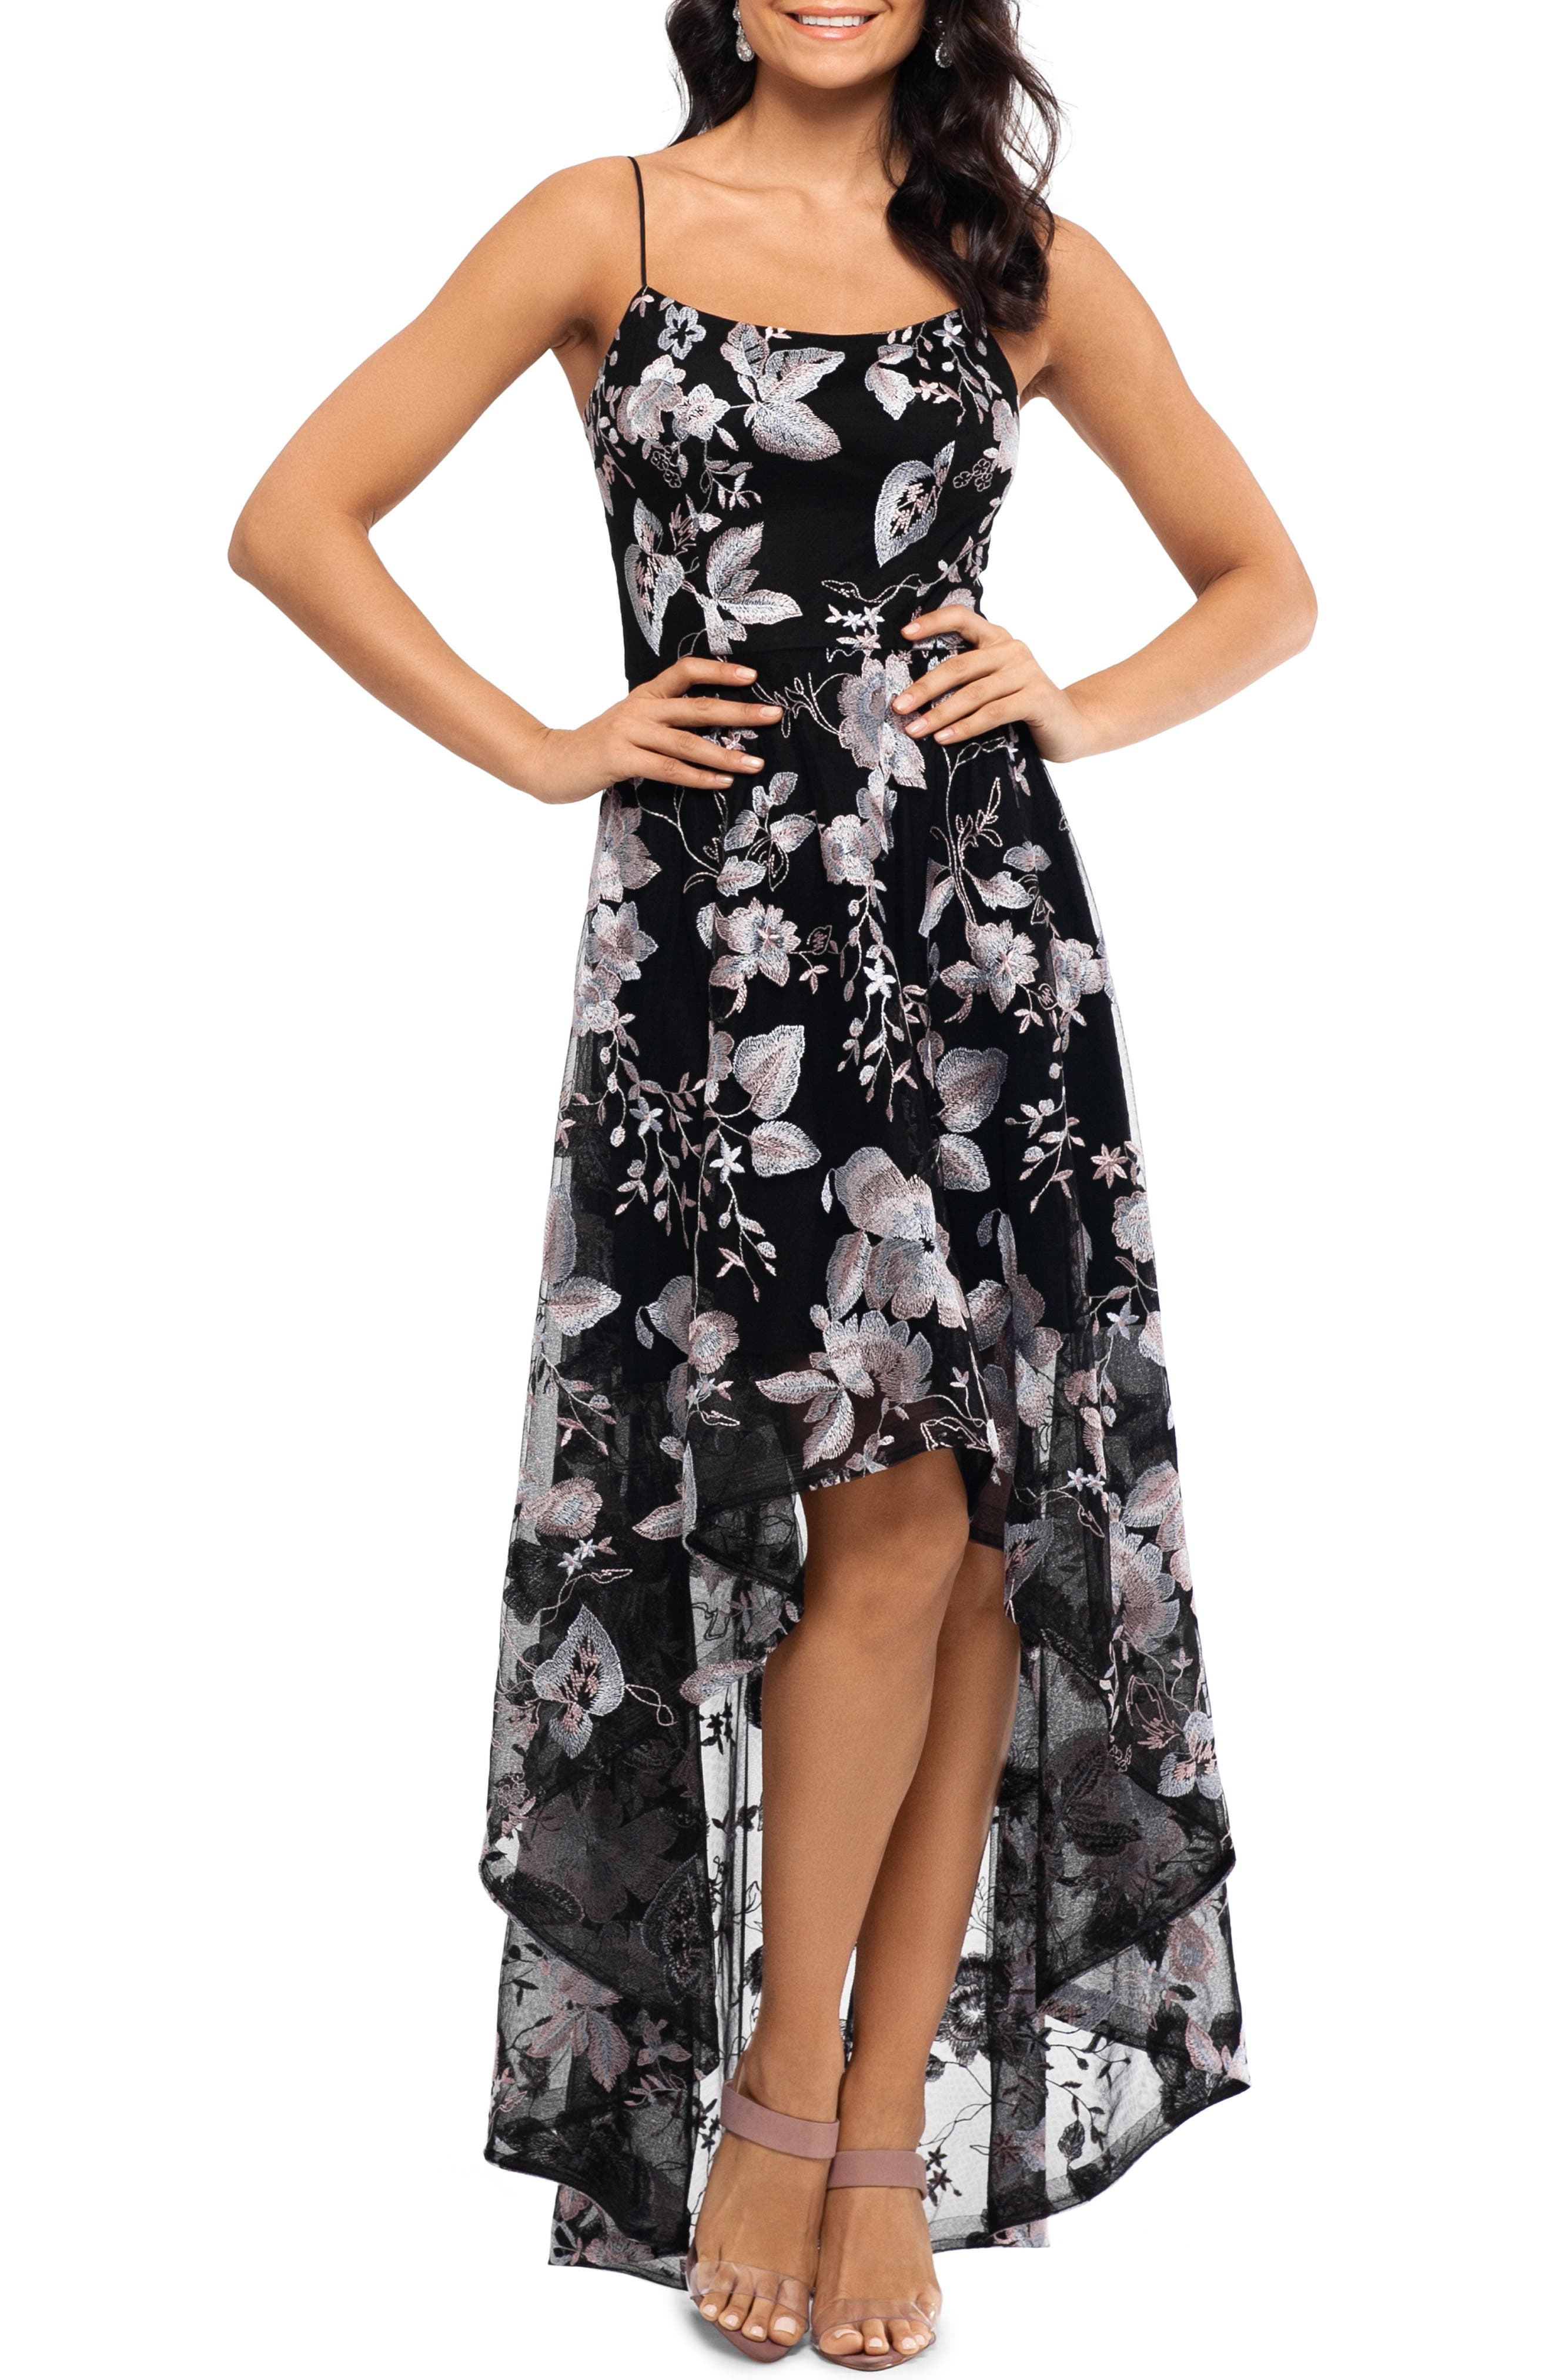 Xscape Floral Embroidery High/low Cocktail Dress, Black